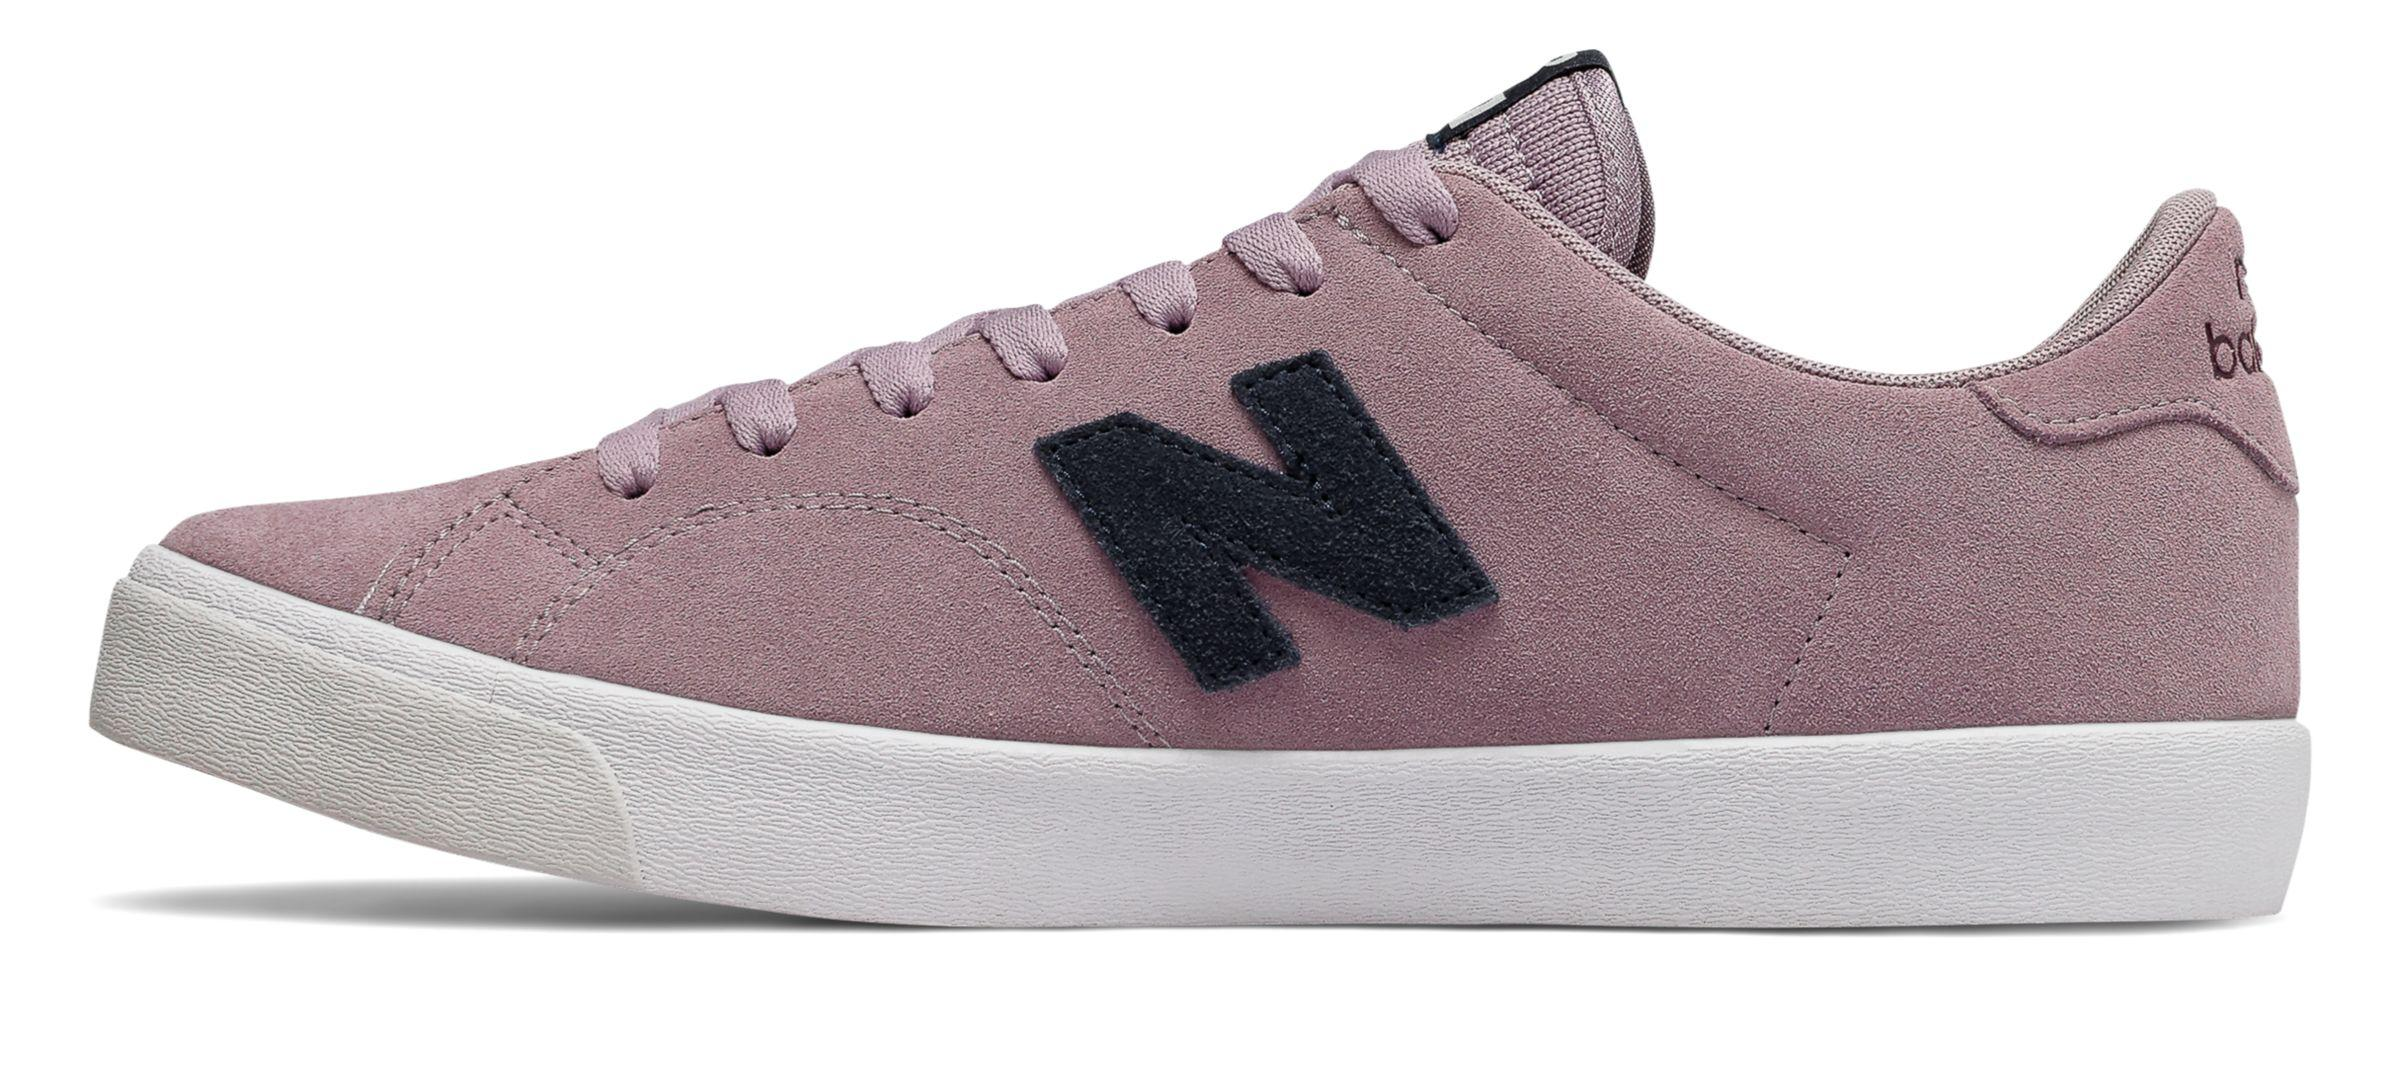 New Balance Canvas All Coasts 210 for